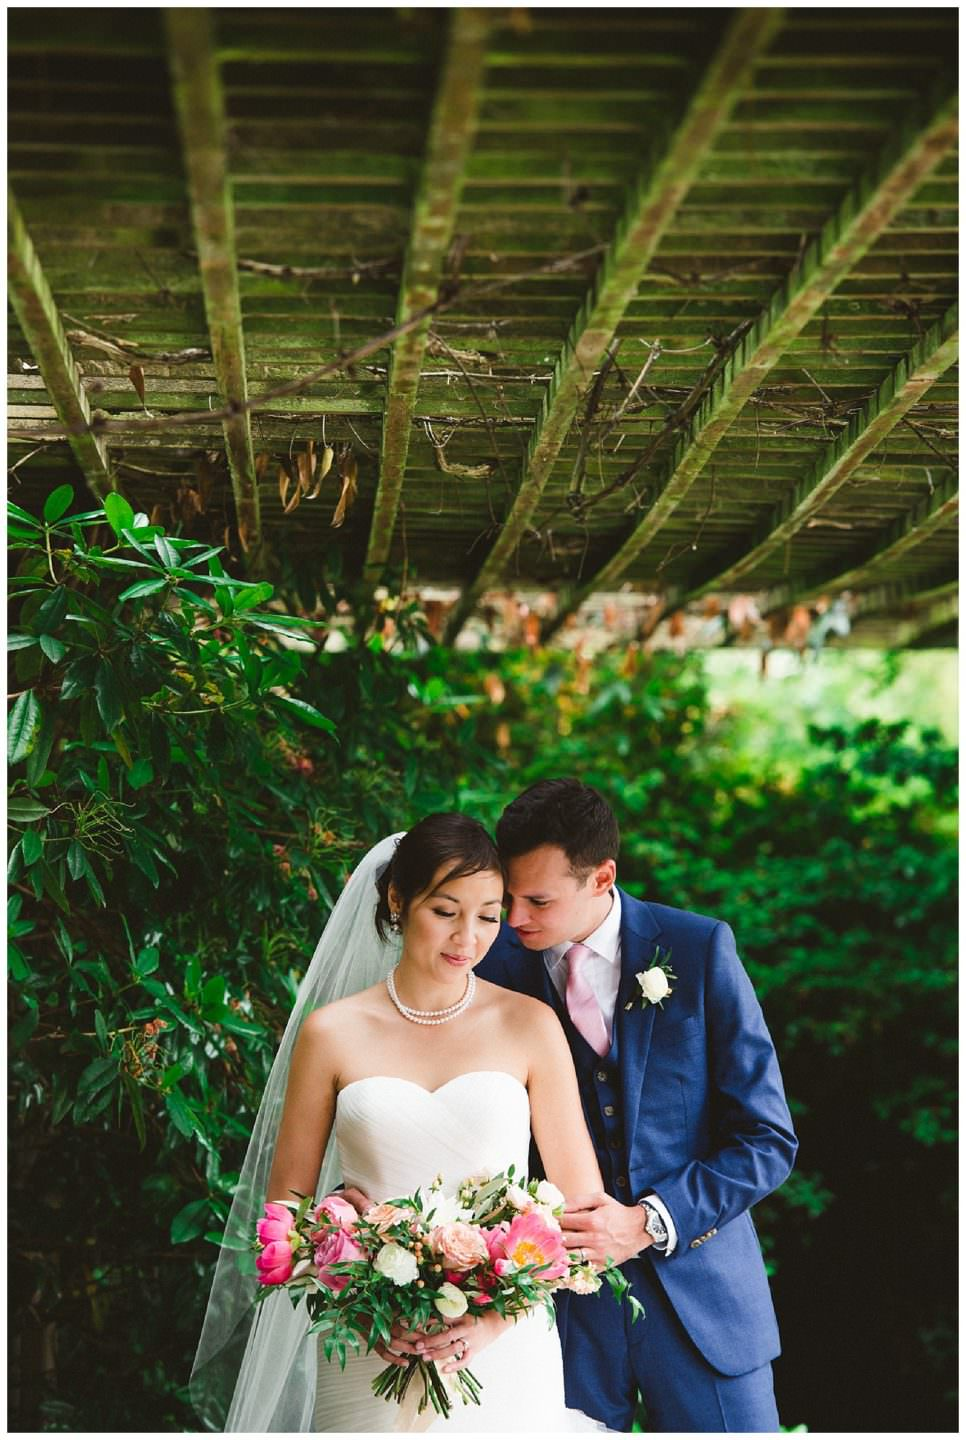 CecilGreenParkhouseWedding_Vancouver_RonnieLeeHillPhotography_1068